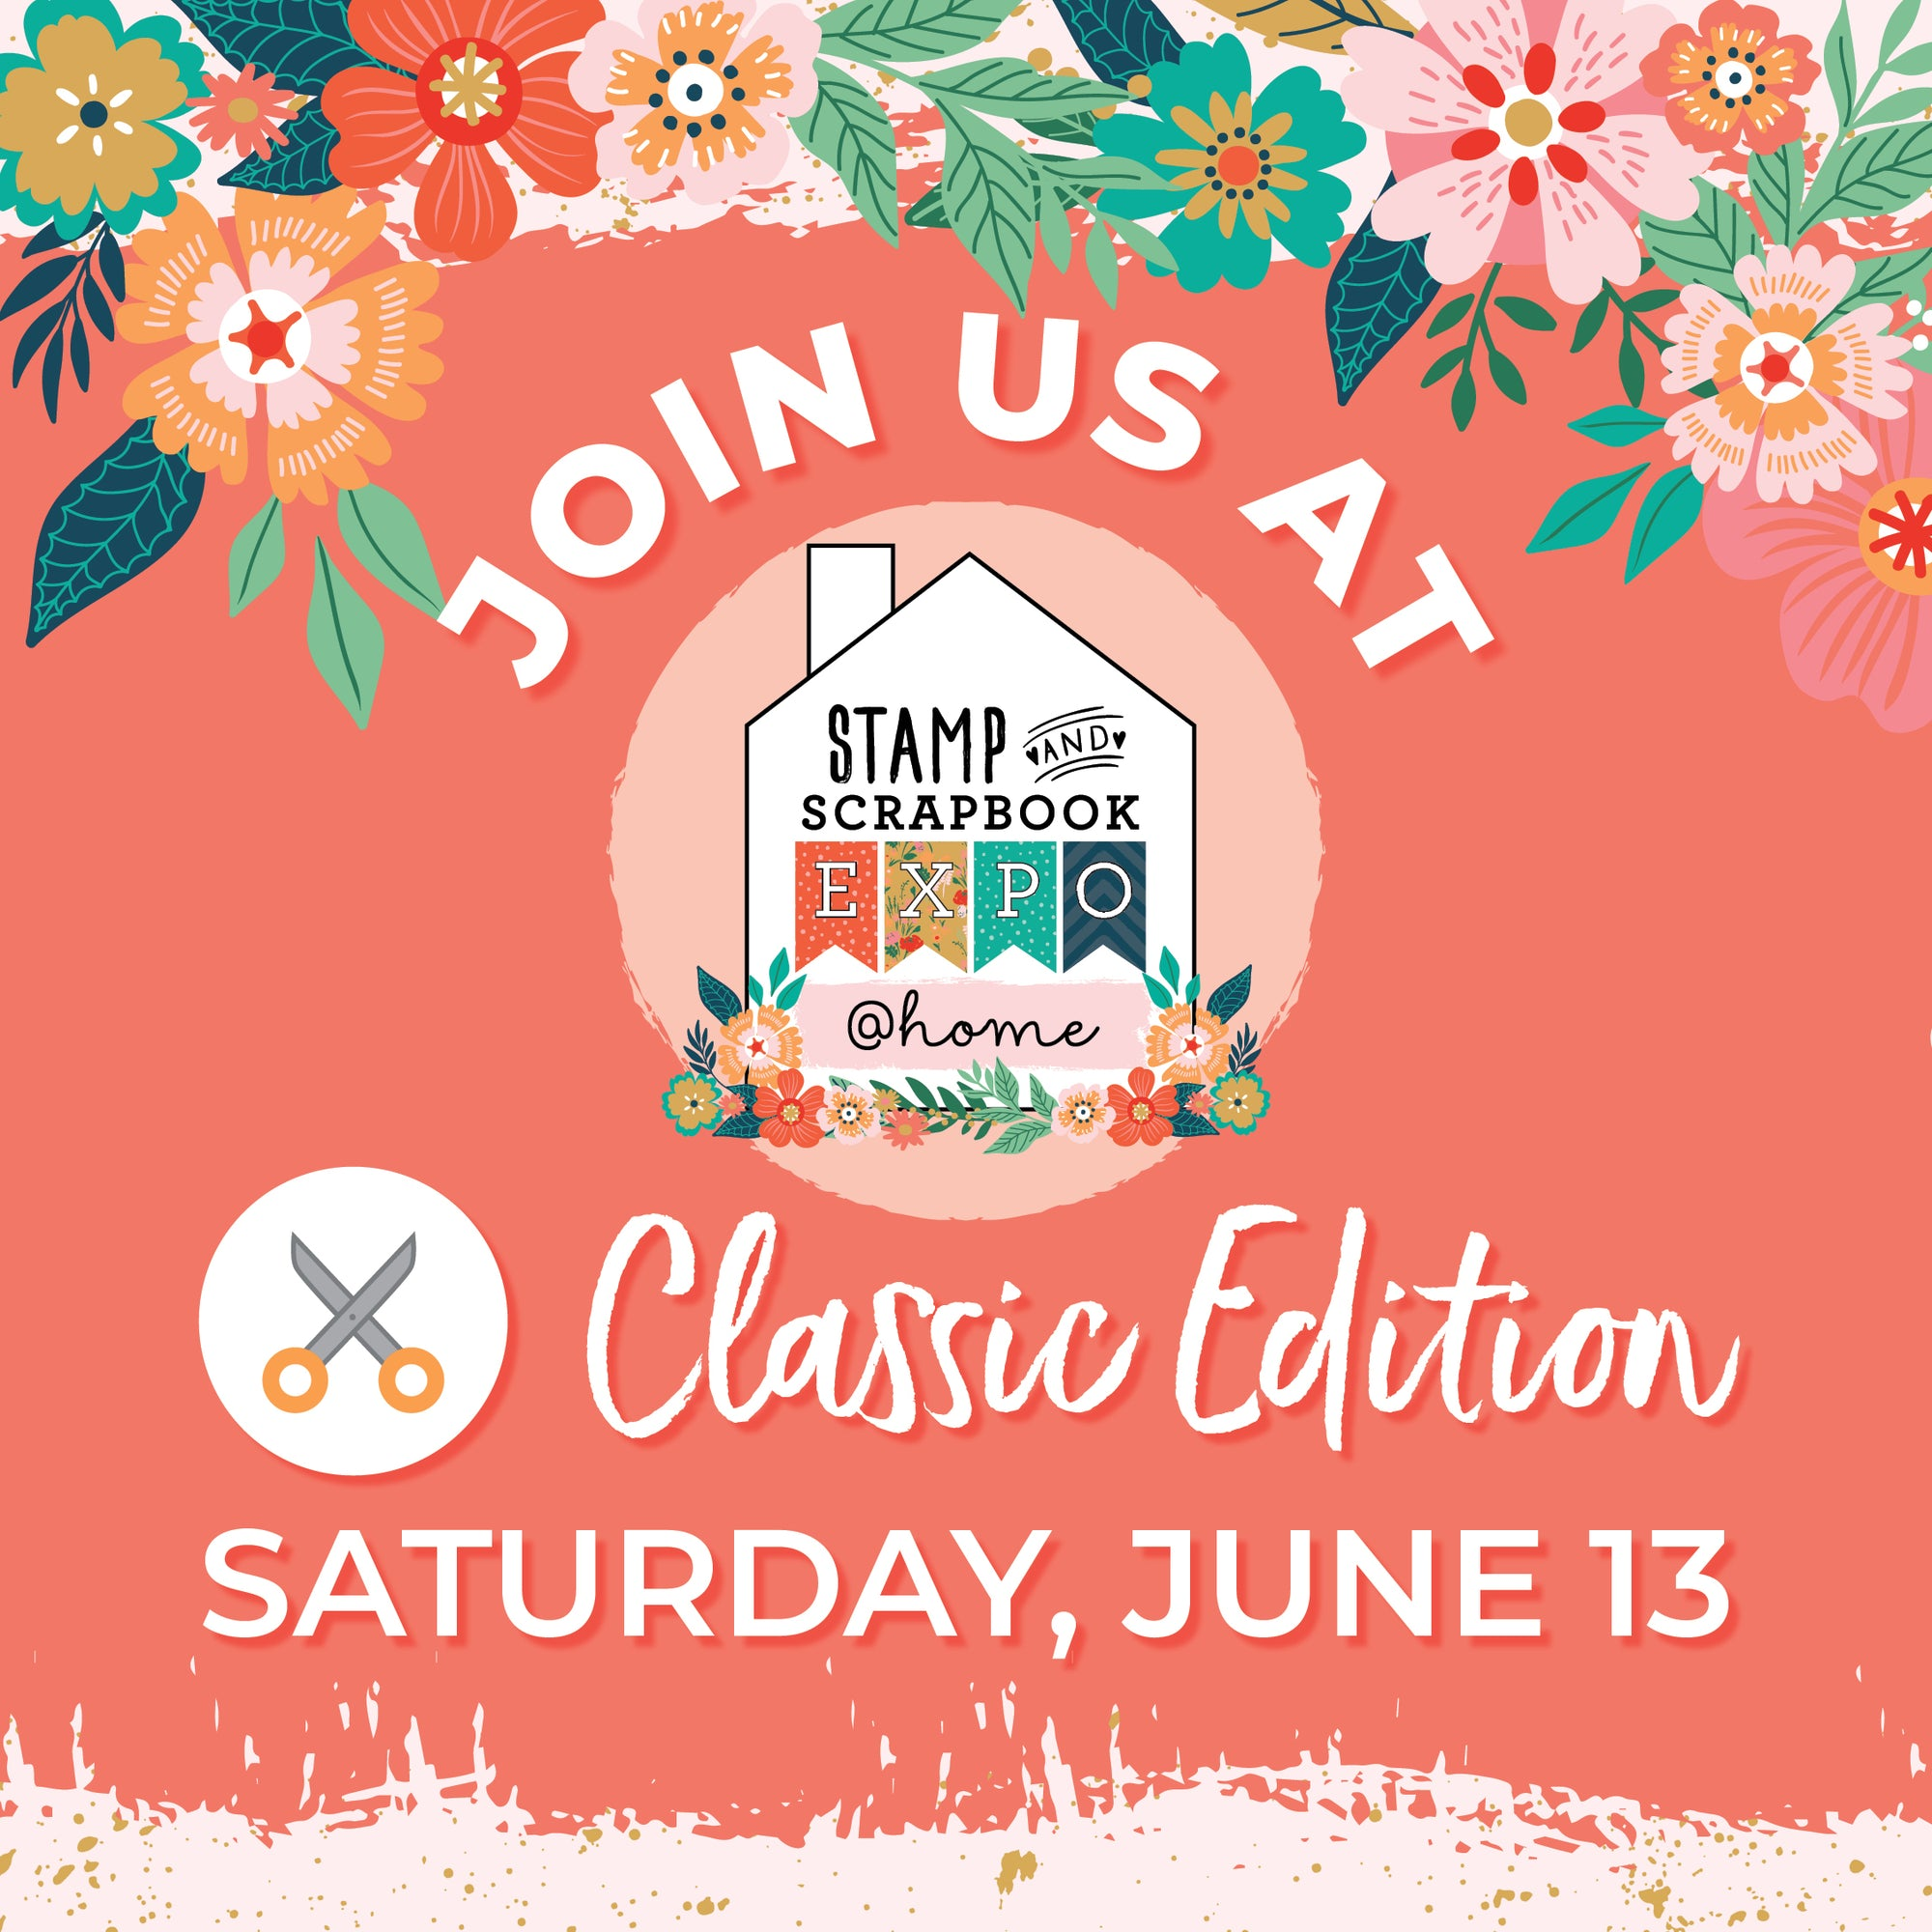 Stamp & Scrapbook Expo @Home Event